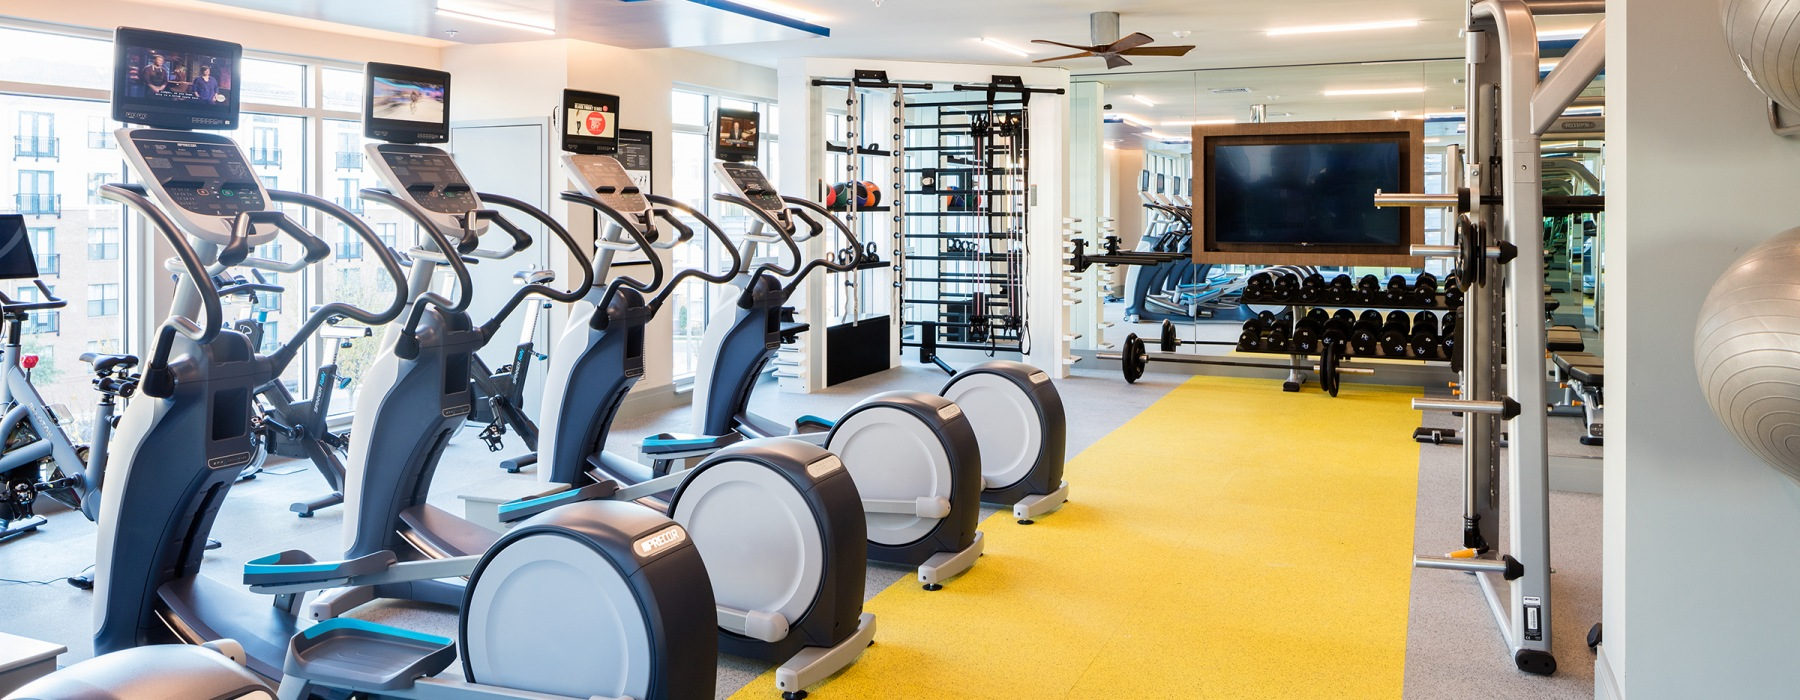 fitness center featuring crossfit equipment, free weights, cardio machines